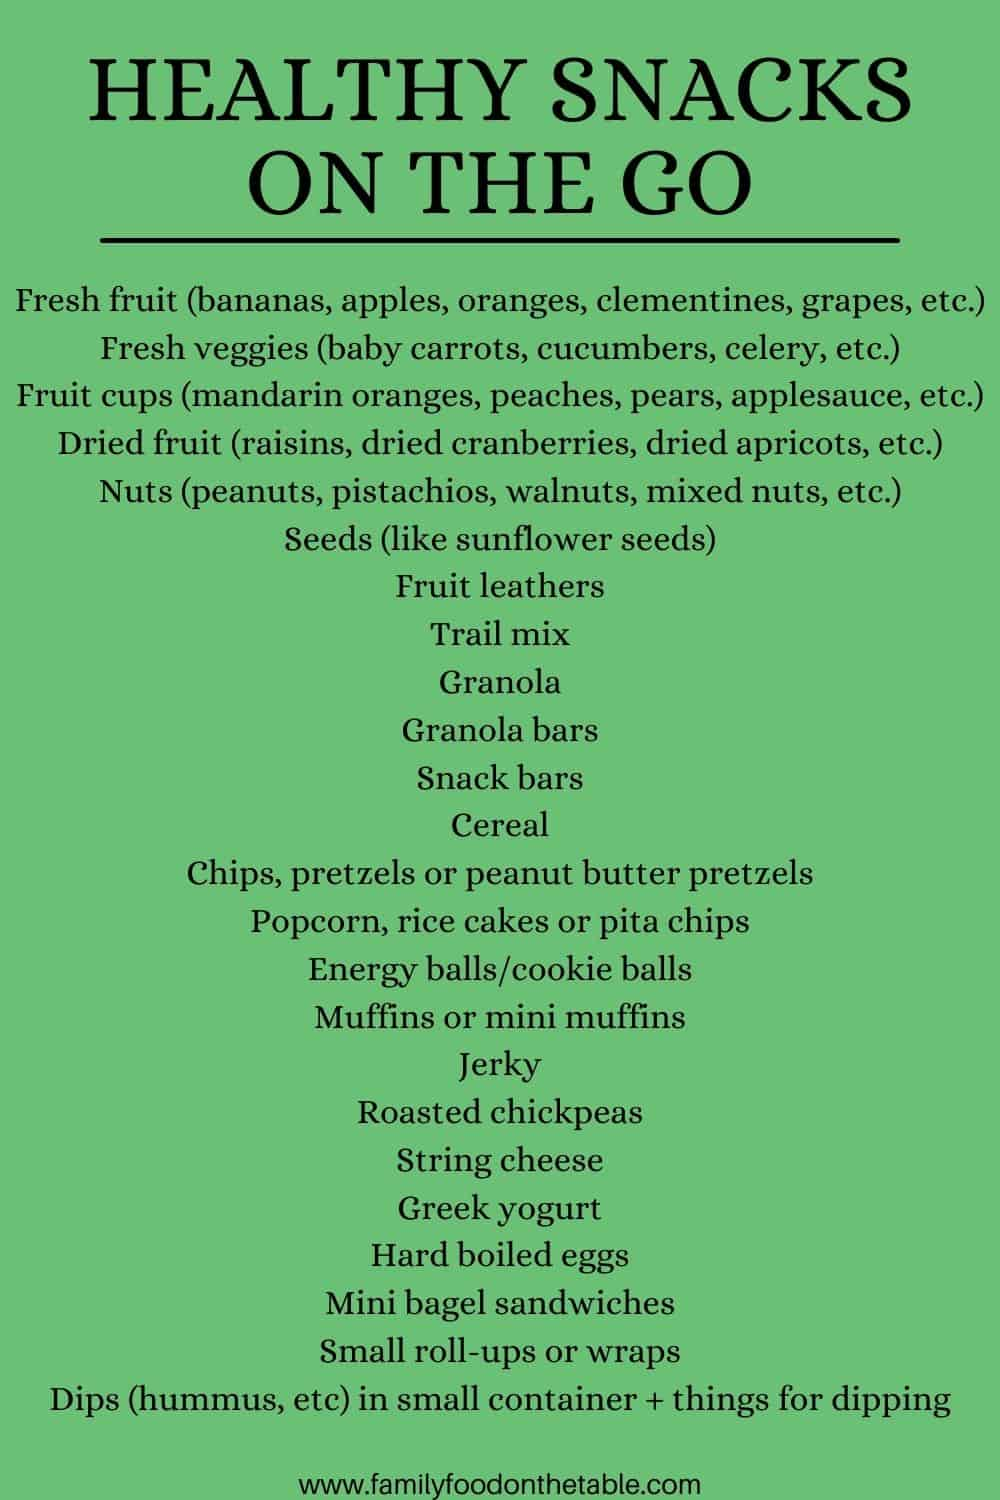 A green image with a list of healthy snacks on the go